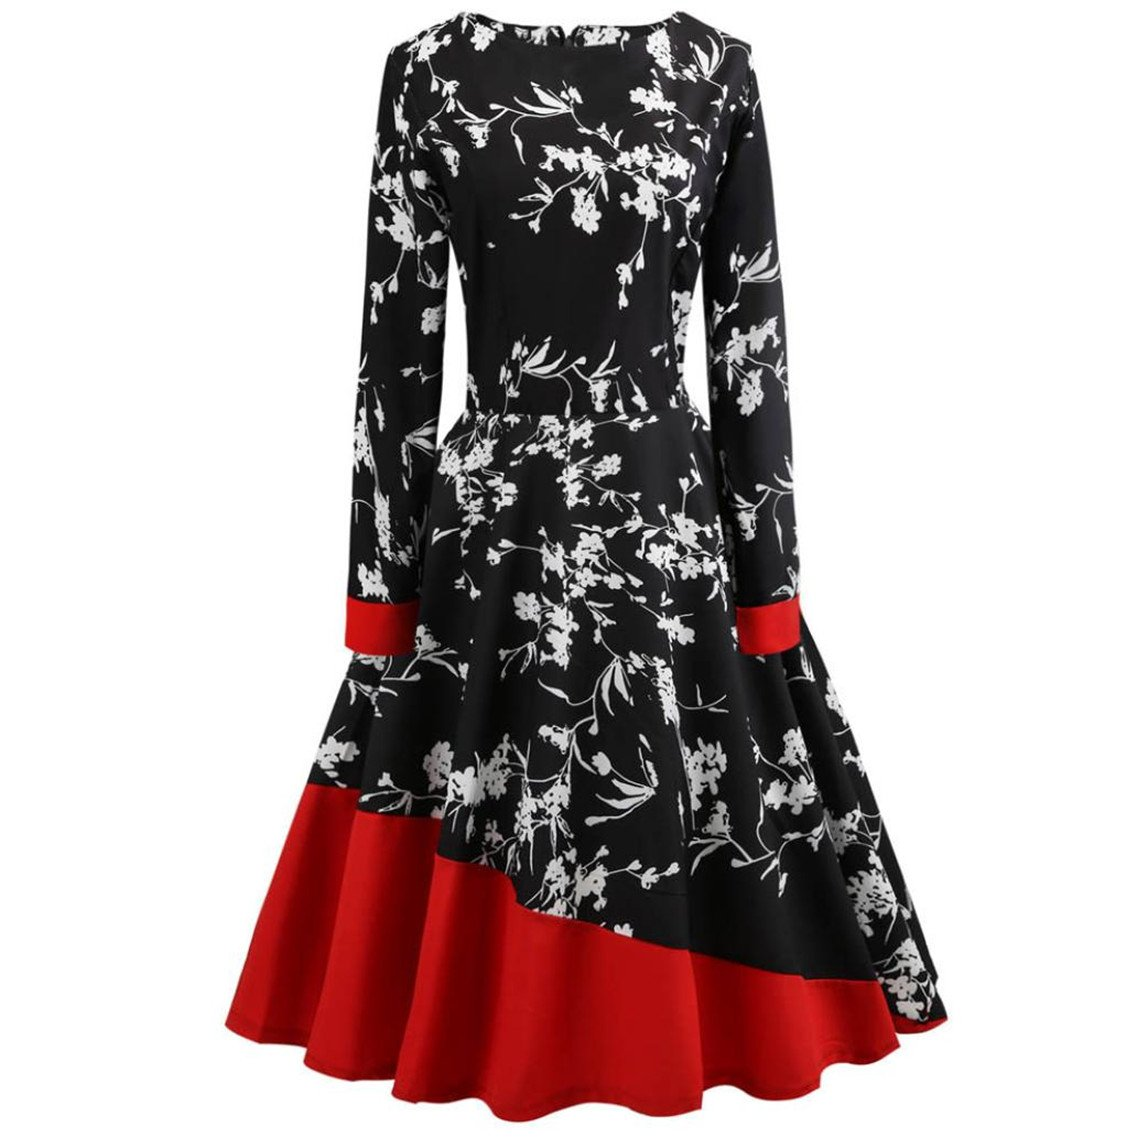 Nadition Vintage Dresses Clearance ♥ Long Sleeve Boho Floral Printed Casual Evening Party Prom Swing Dress (Black, S)